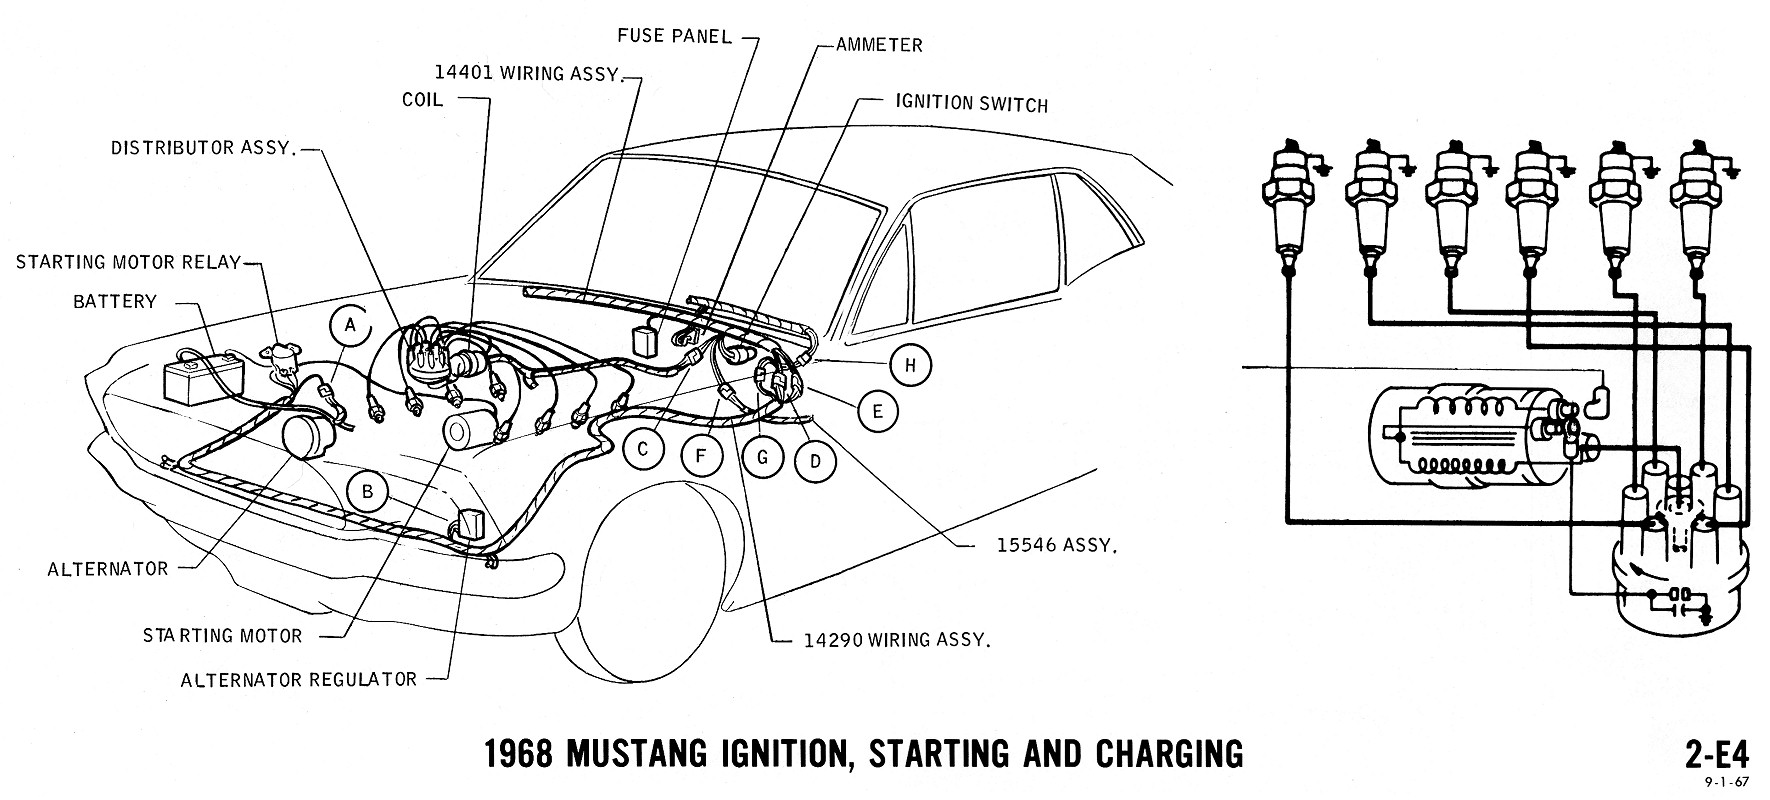 1968 mustang wiring diagram ignition starting charging 2 1969 mustang wiring diagram 1969 ranchero wiring diagram \u2022 wiring 1969 mustang wiring diagram online at gsmx.co